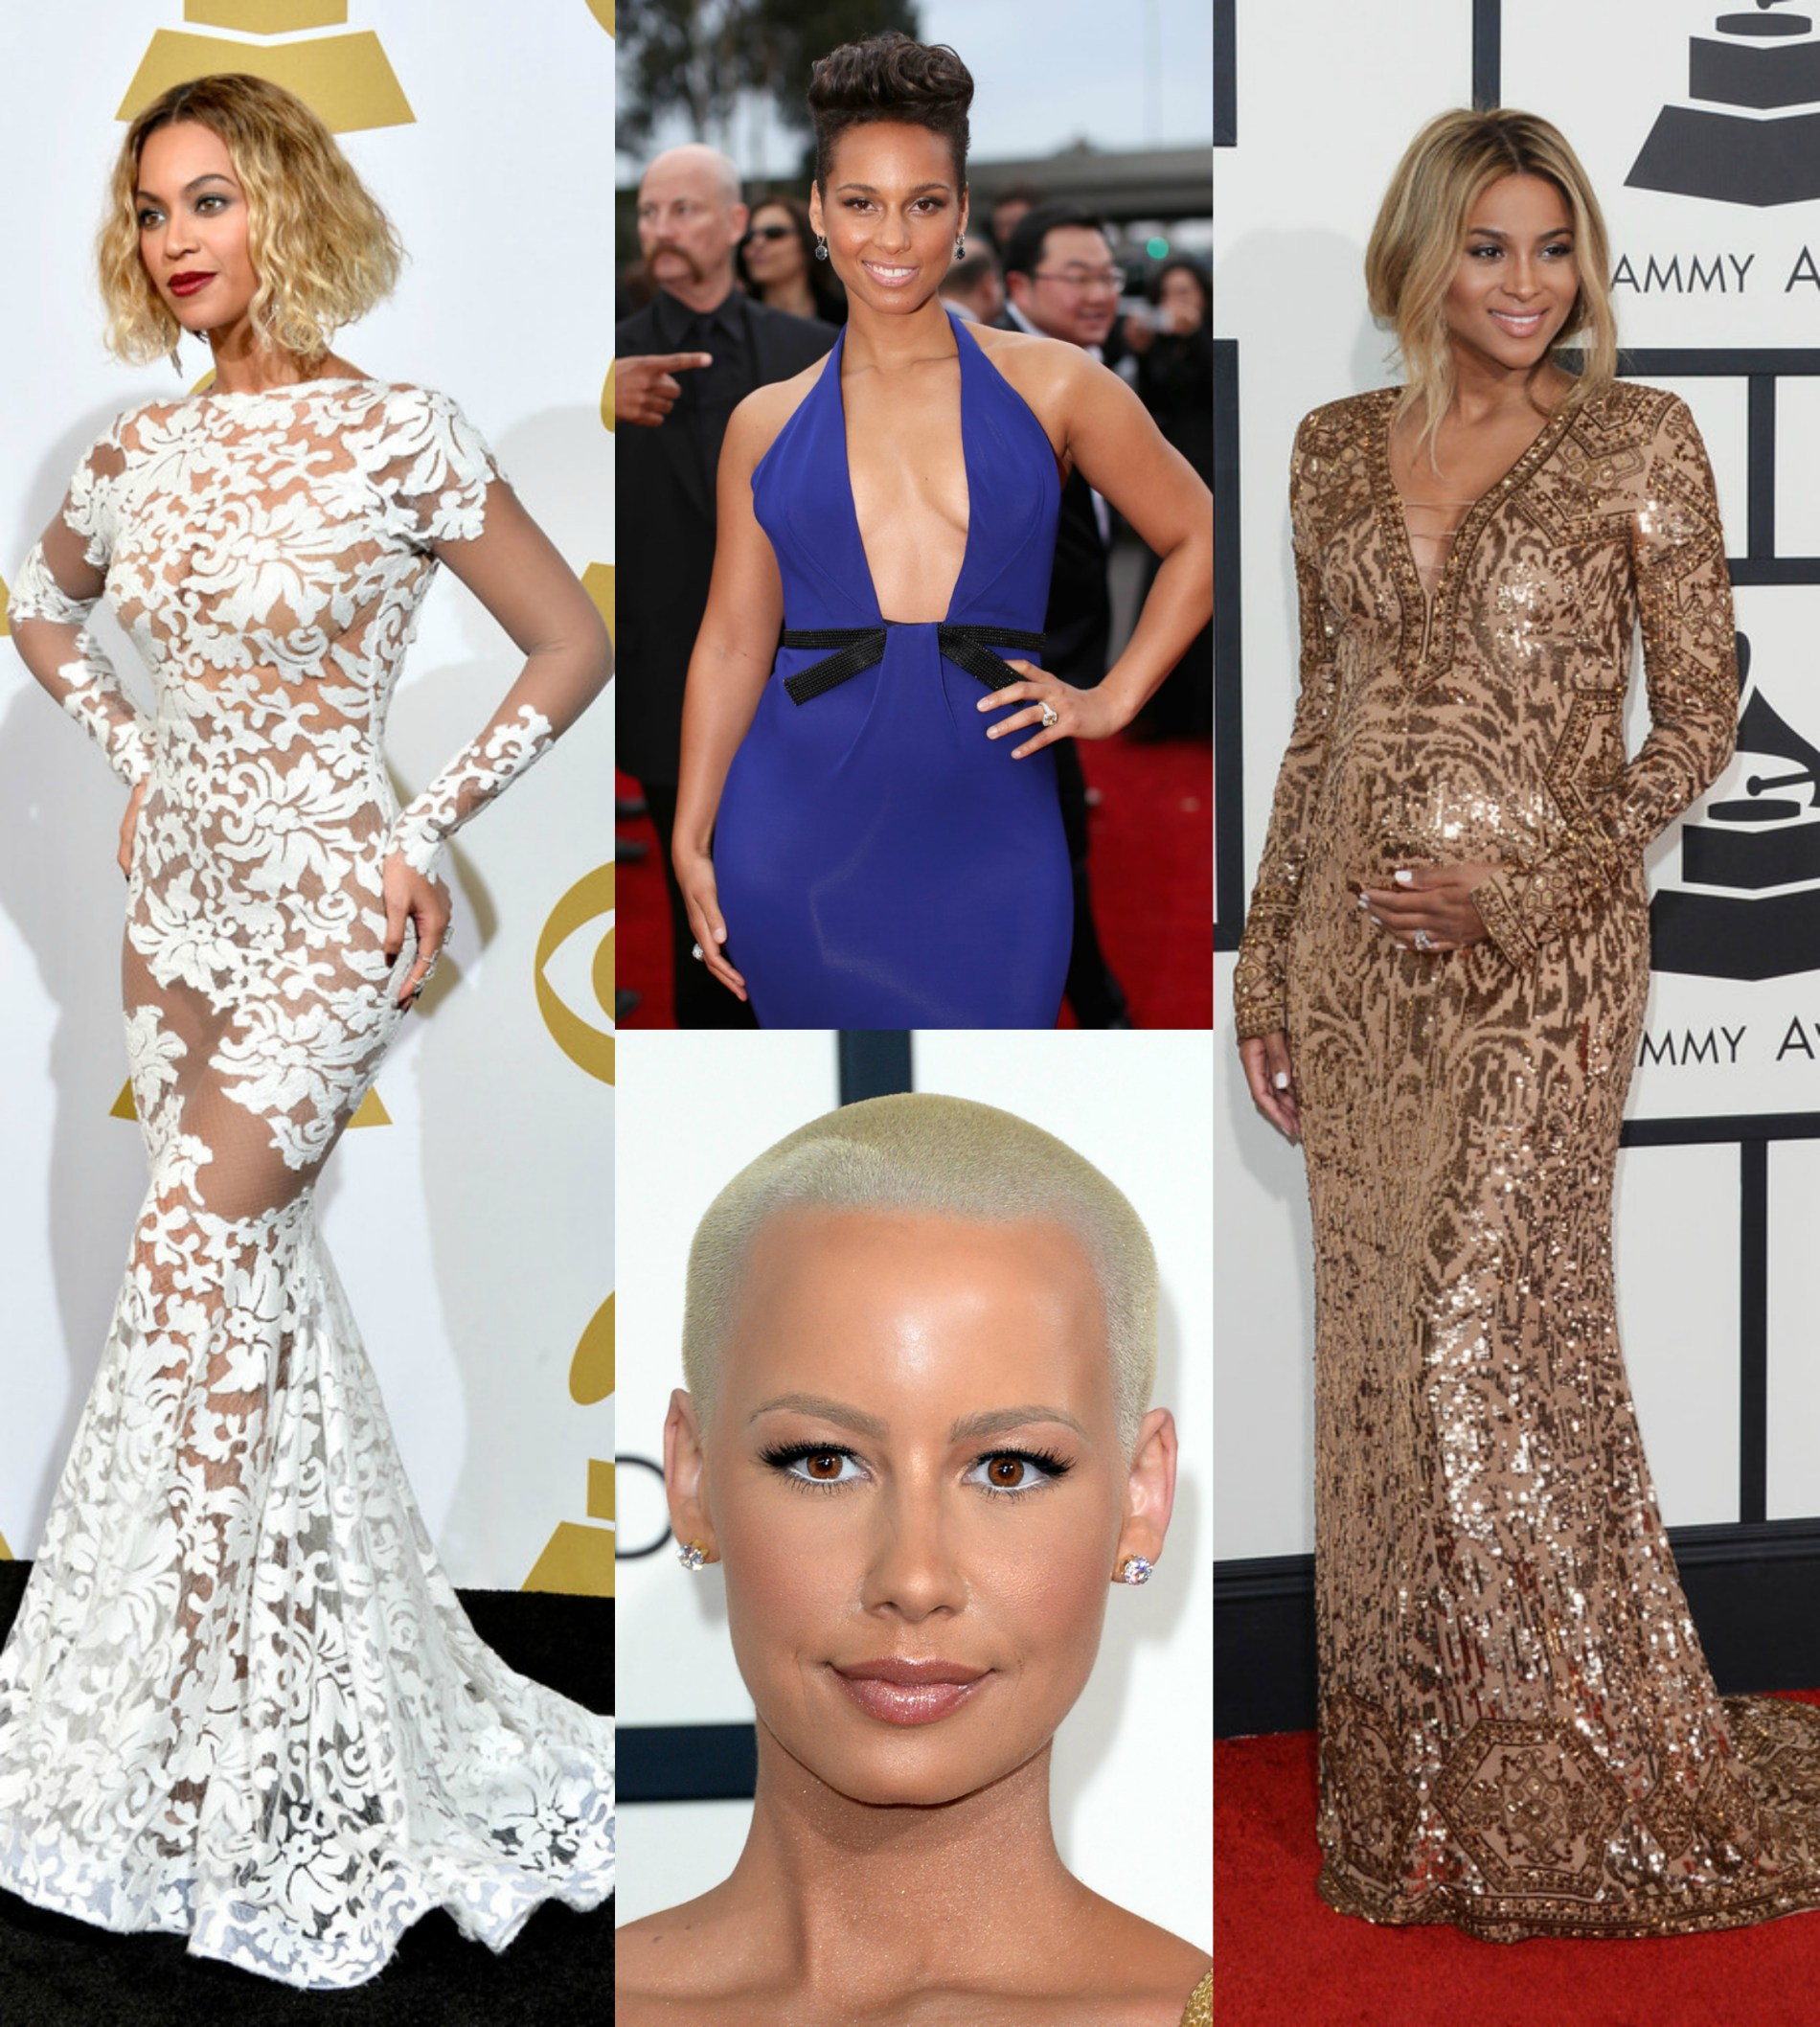 beyonce, pregnant ciara, amber rose, alicia keys at 56th Annual GRAMMY Awards